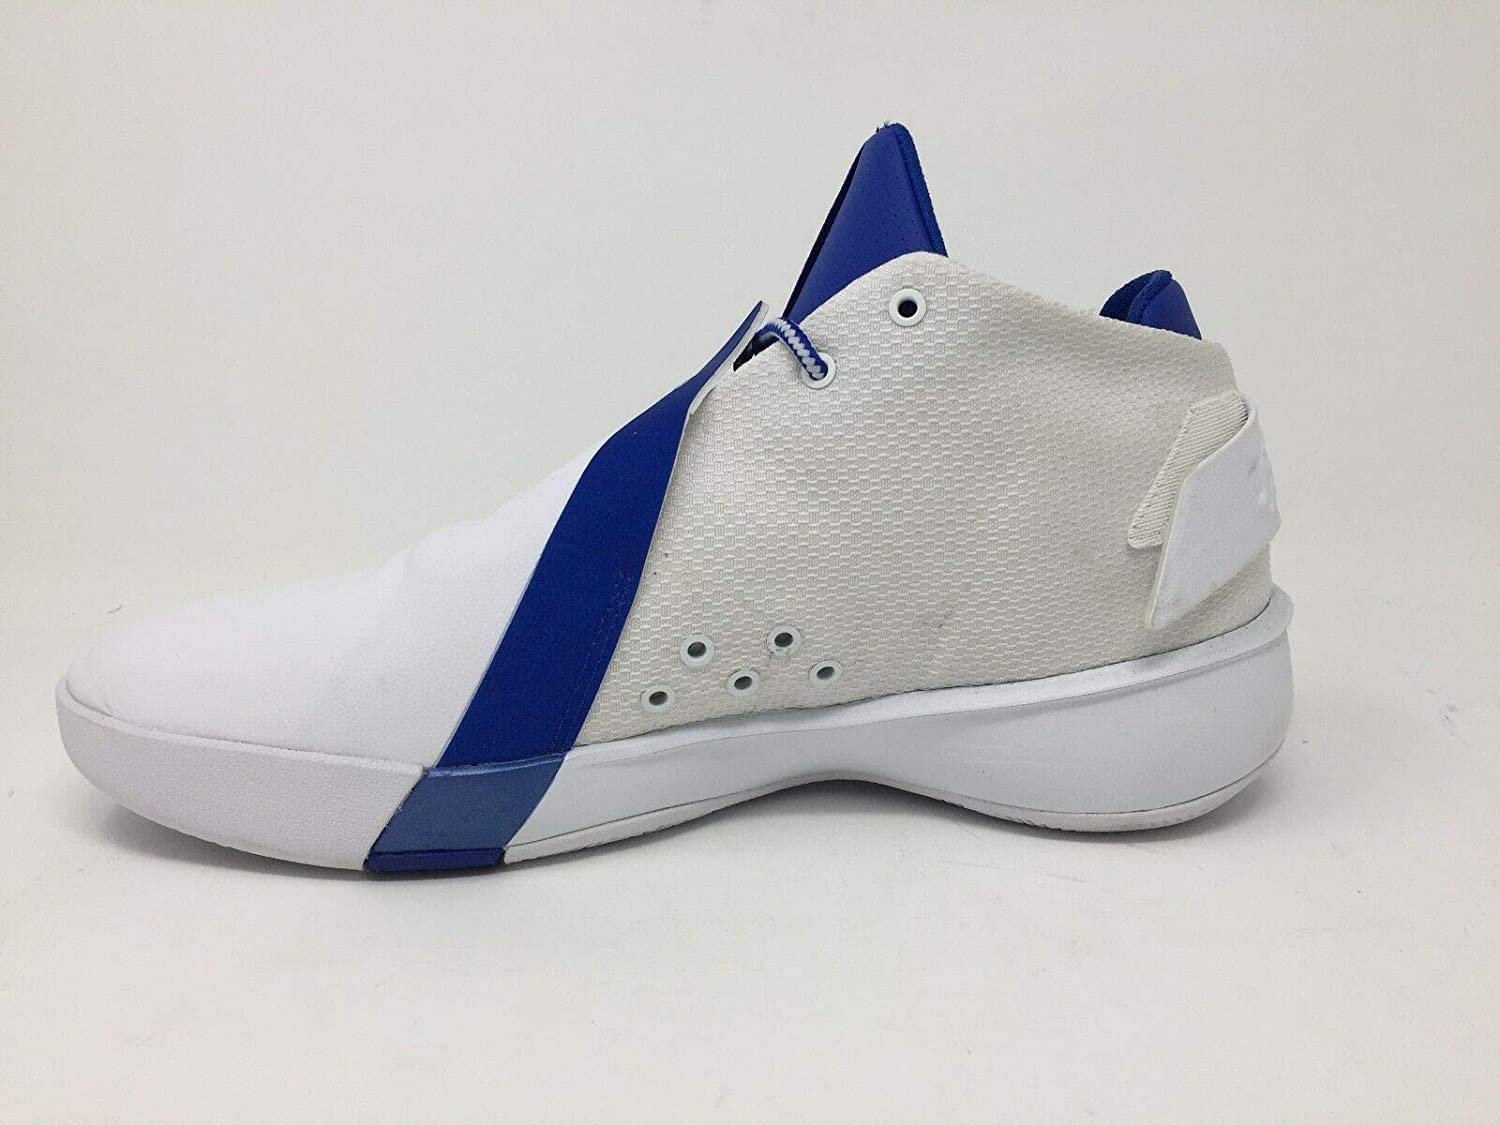 7472b89c89bb Amazon.com  NWOB Nike Jordan Ultra Fly 3 White Blue AR0045-141 SZ 9 (1R13)  Sports  Collectibles